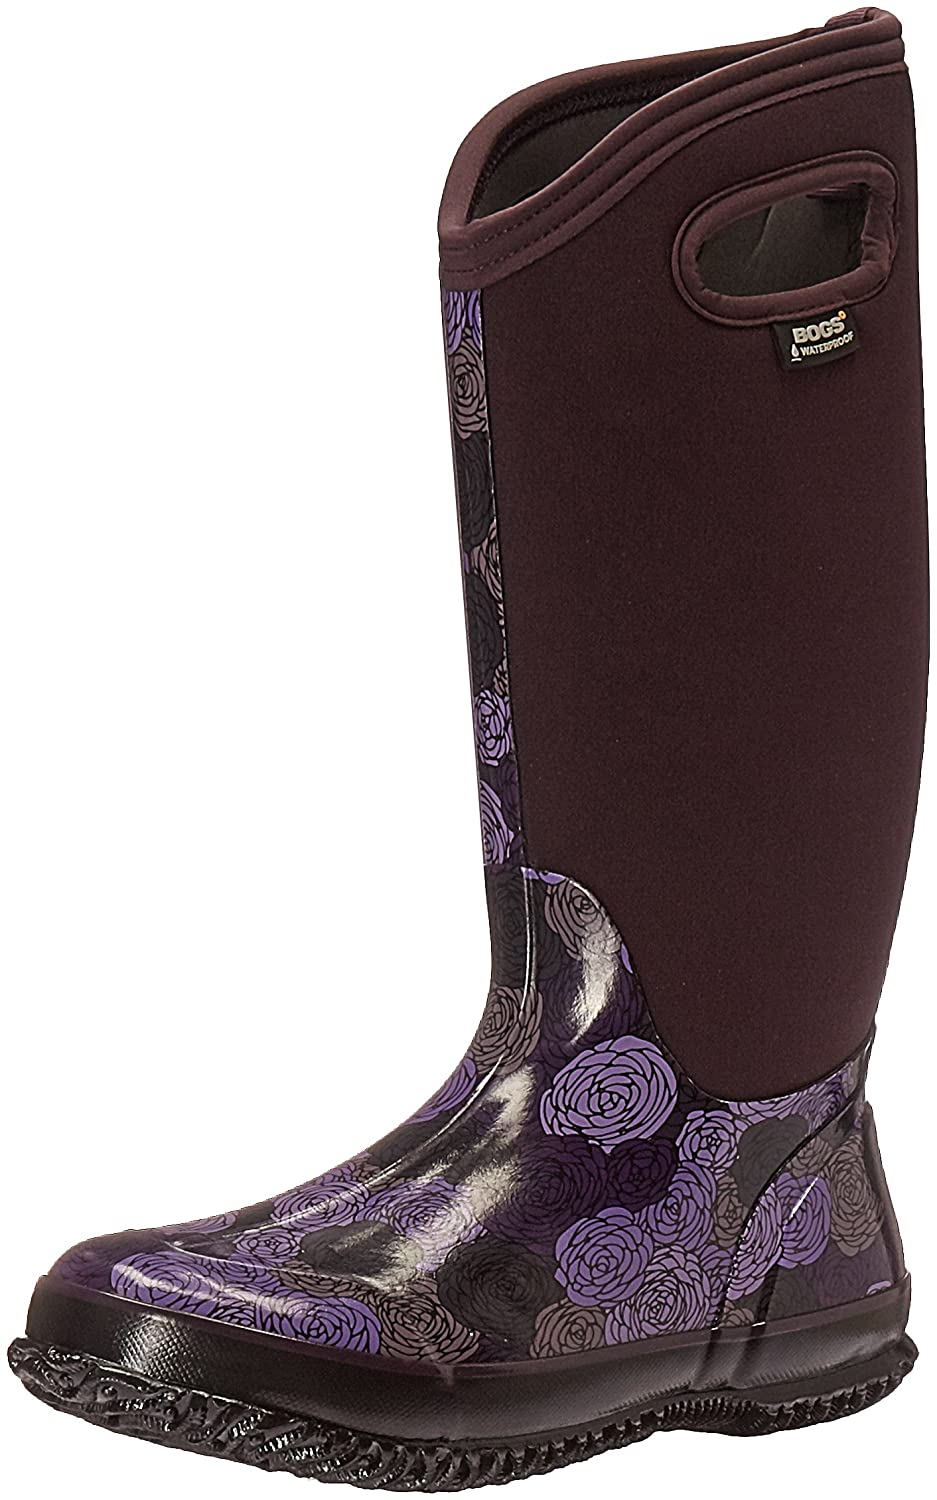 Bogs Ladies Classic Rosay Rosay Rosay Tall schwarz Multi Insulated Warm Wellington Stiefel 72032 (UK4, Plum) 679bb2